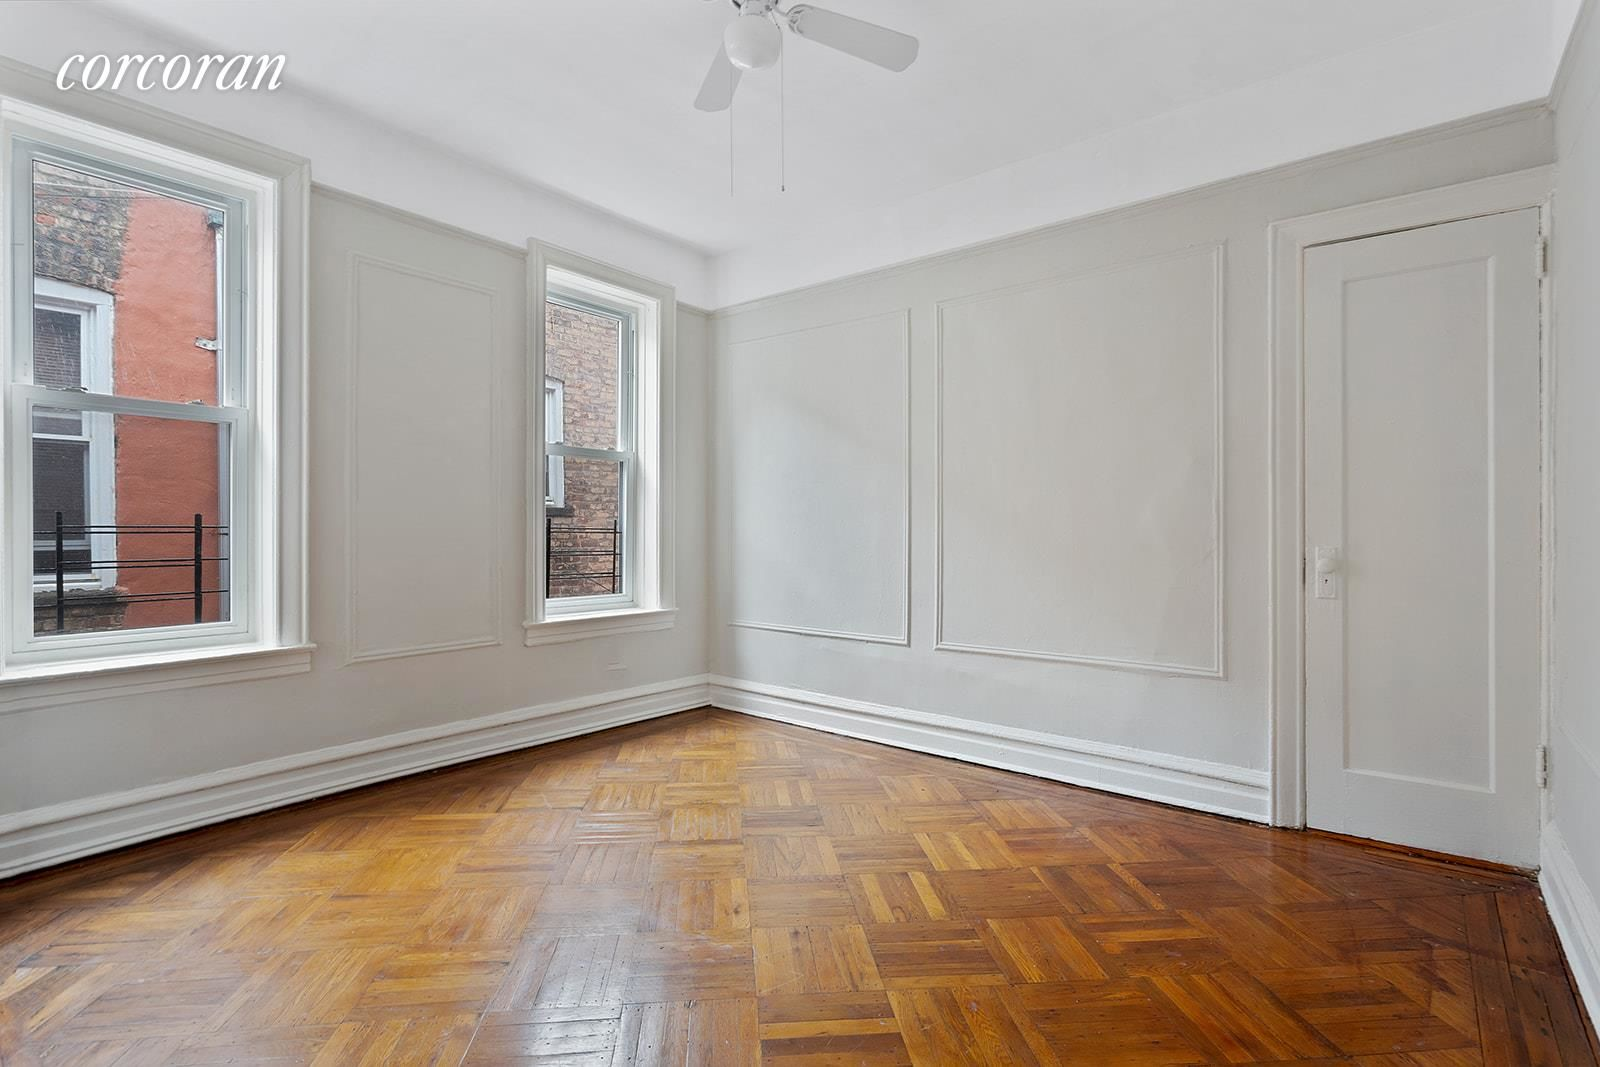 566 Osborn St Photo 3 - NYC-Real-Estate-681128